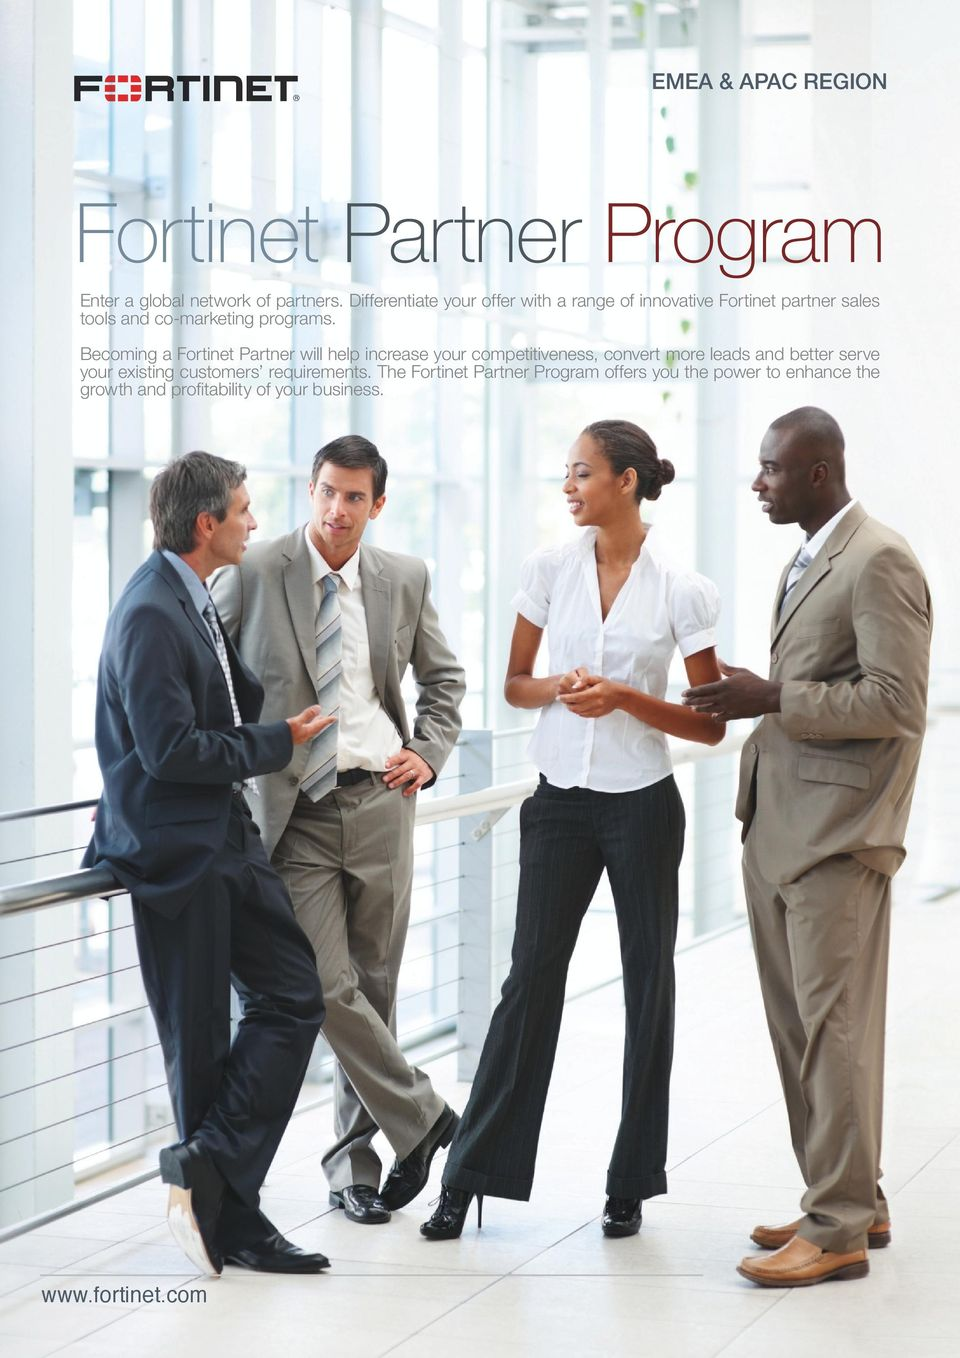 Becoming a Fortinet artner will help increase your competitiveness, convert more leads and better serve your